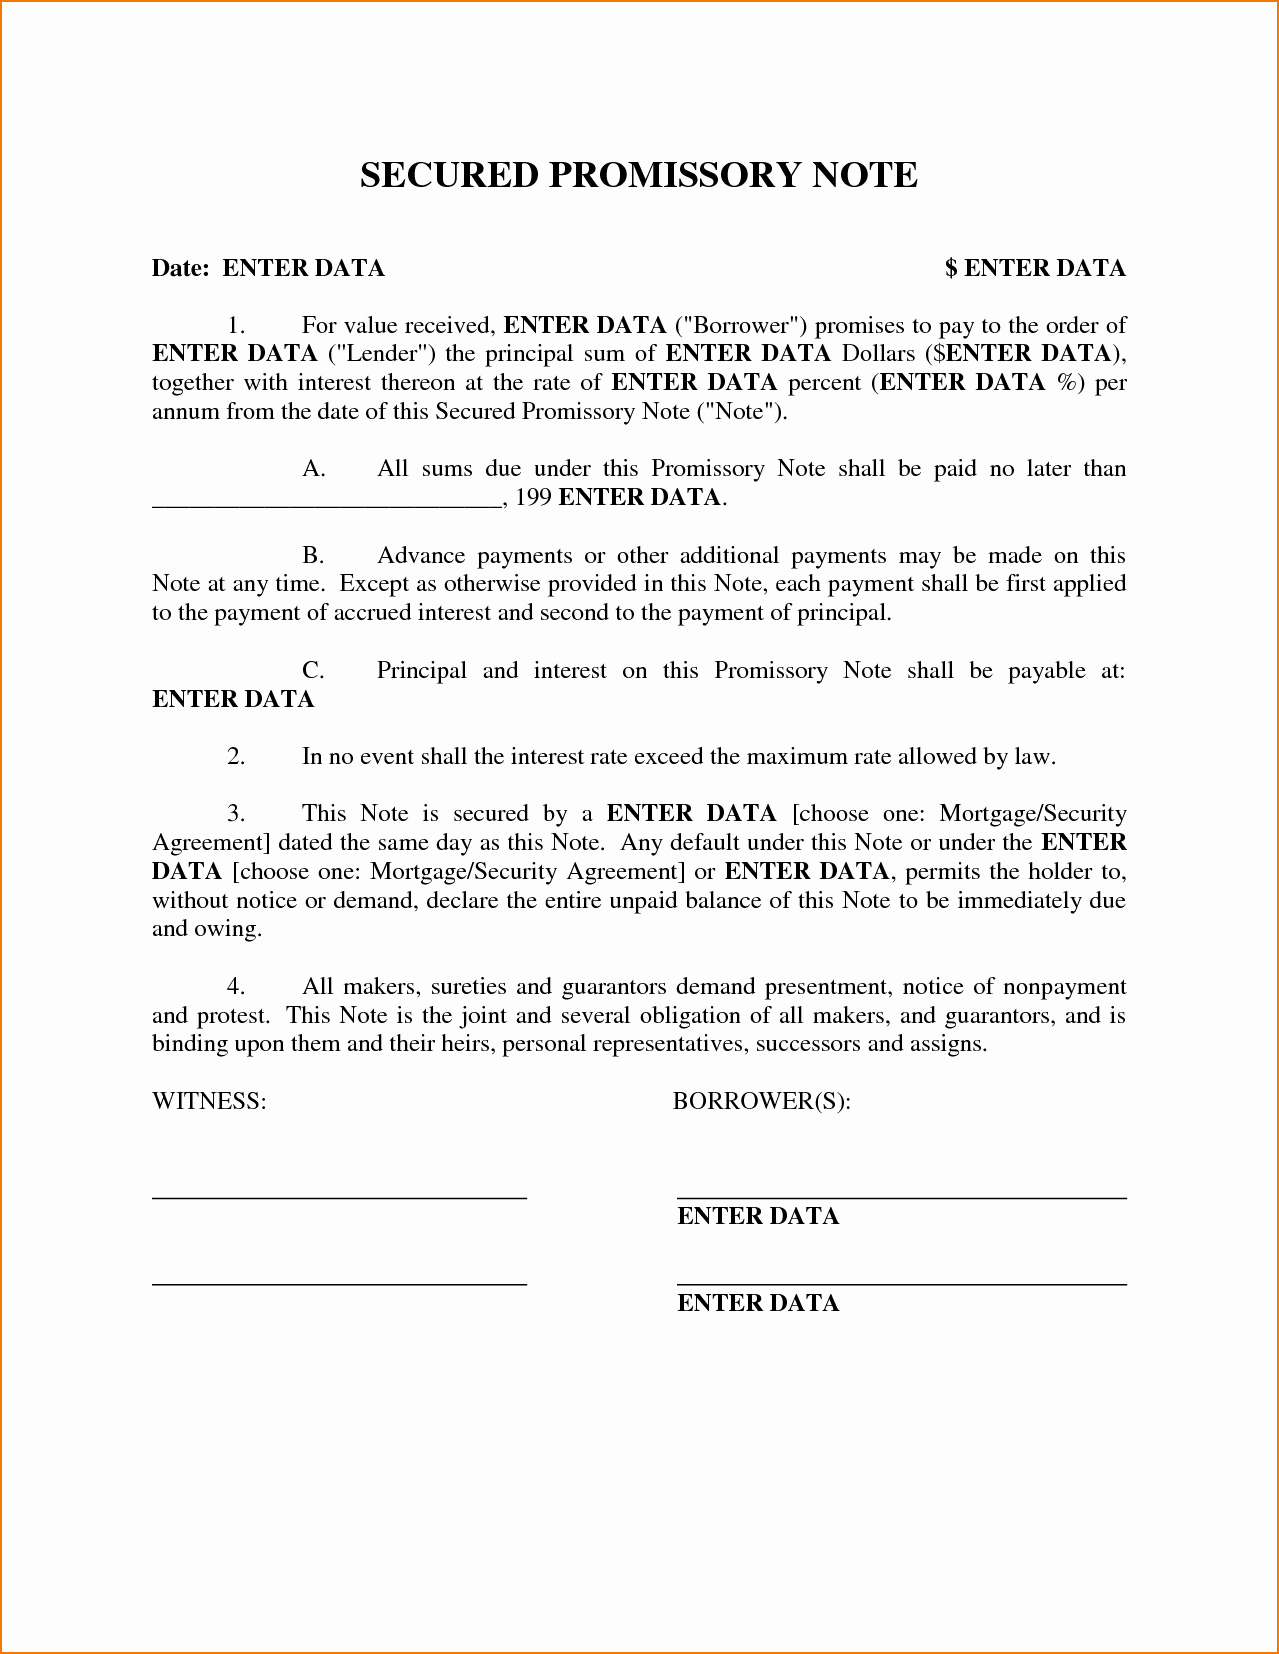 Secured Promissory Note Template Pdf Best Of 4 Secured Promissory Note Template